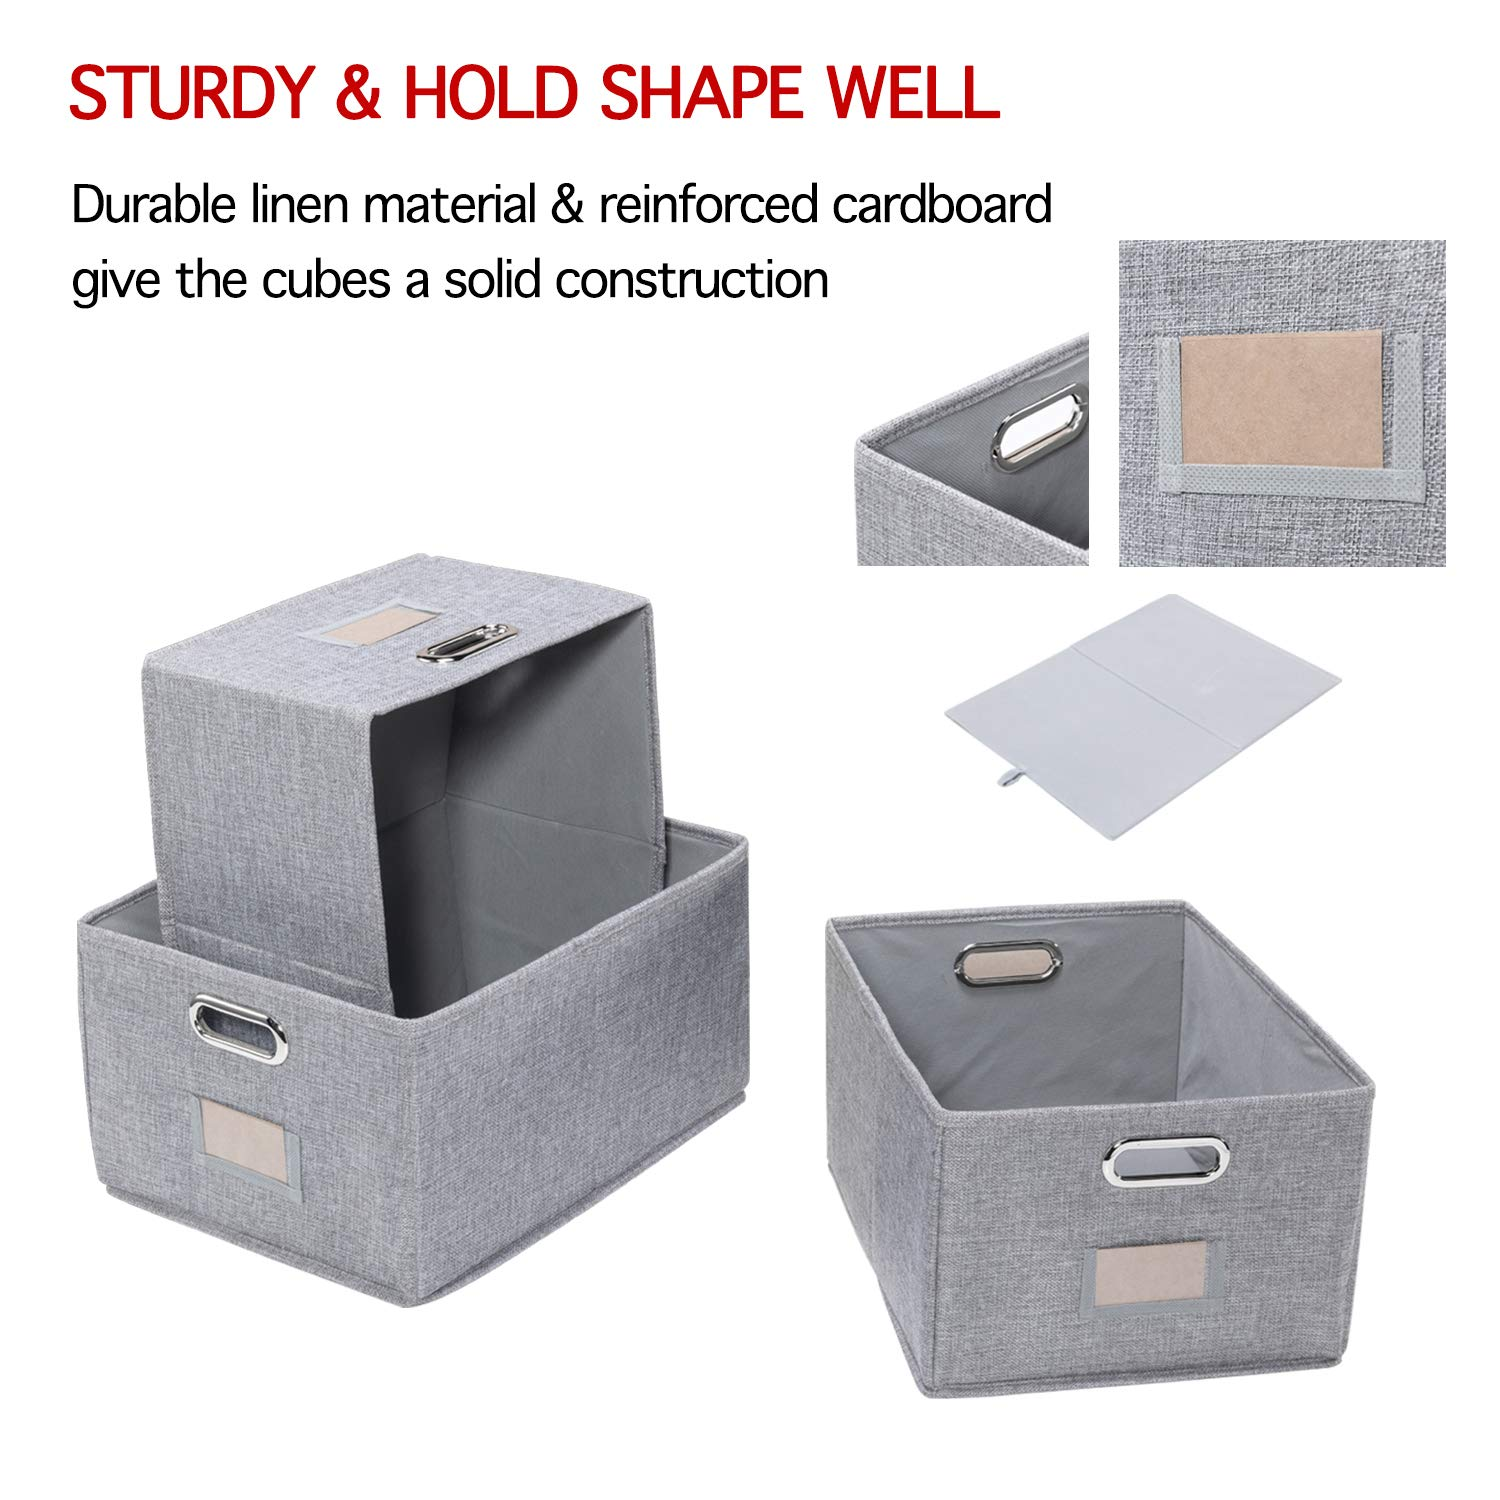 Foldable Cloth Organizer Bins with Handles for Home Closet Bedroom Drawers Organizers 3 Organizer Baskets Bins for Shelves 15.7x11.8x8.3 inches Large Storage Baskets Closet Bins with Labels